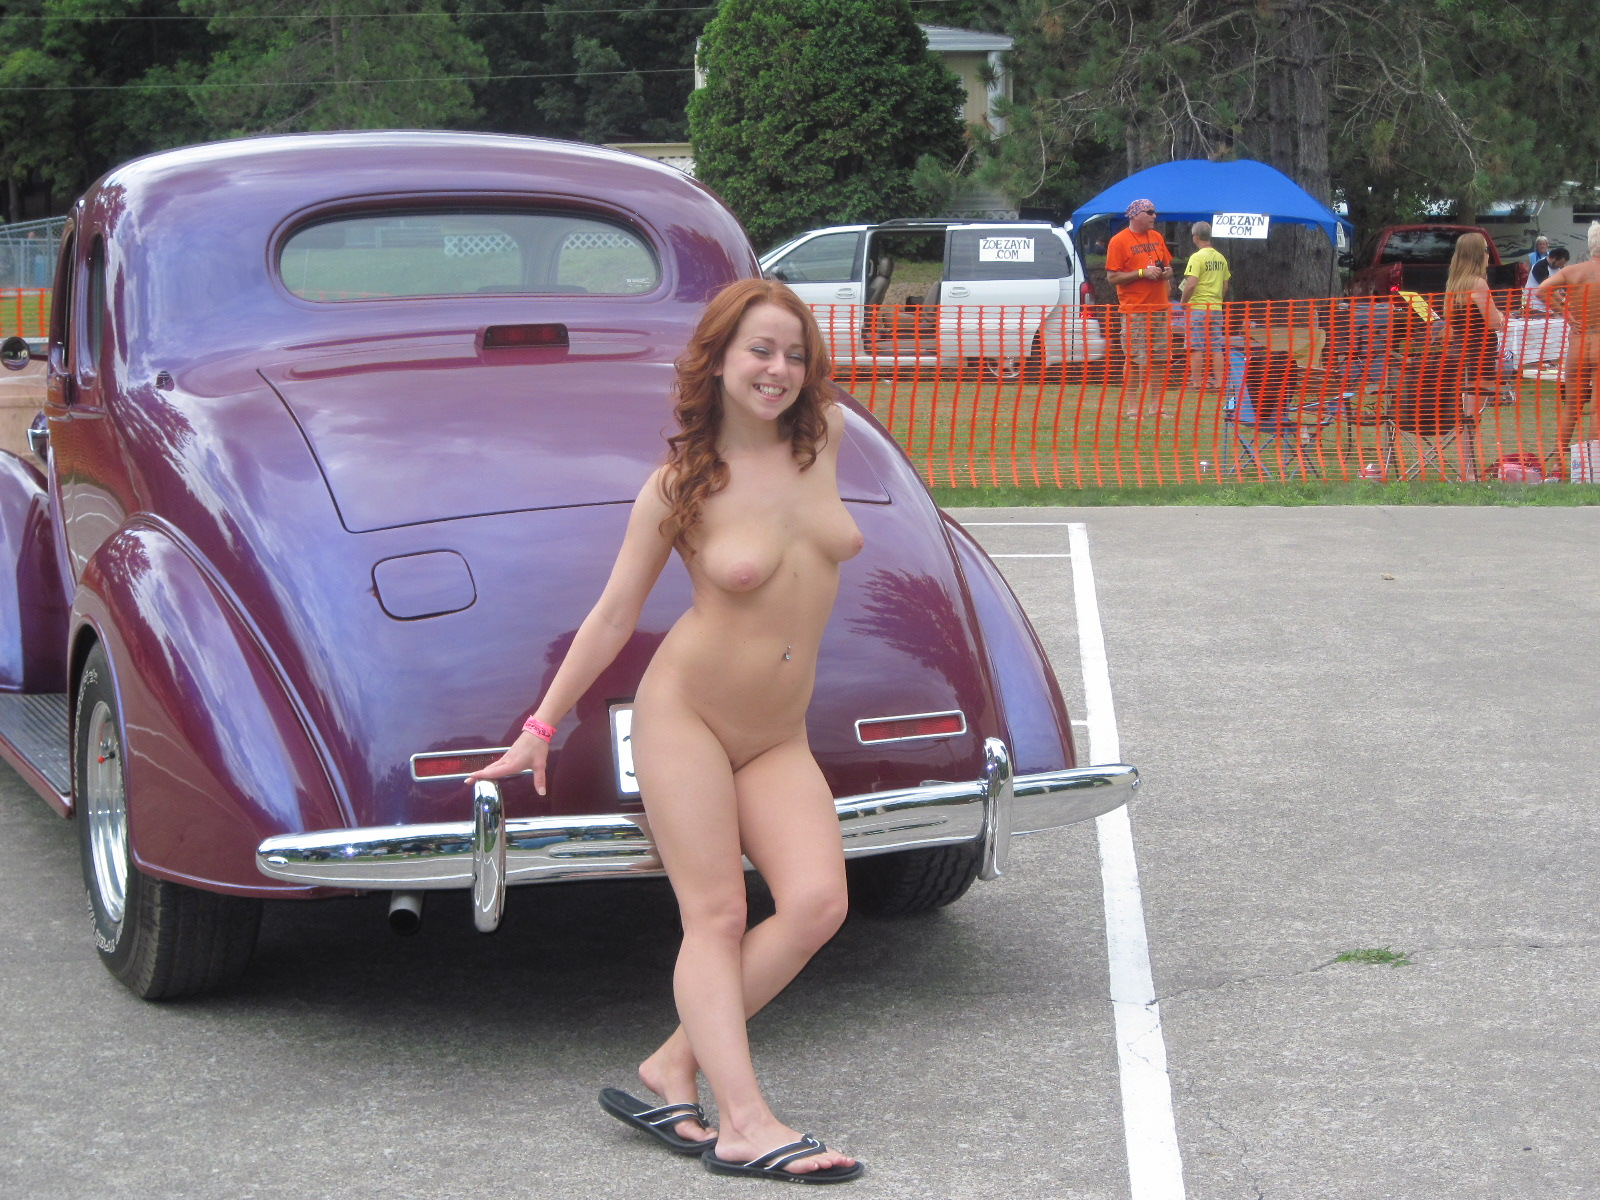 Nude Women And Hot Rods